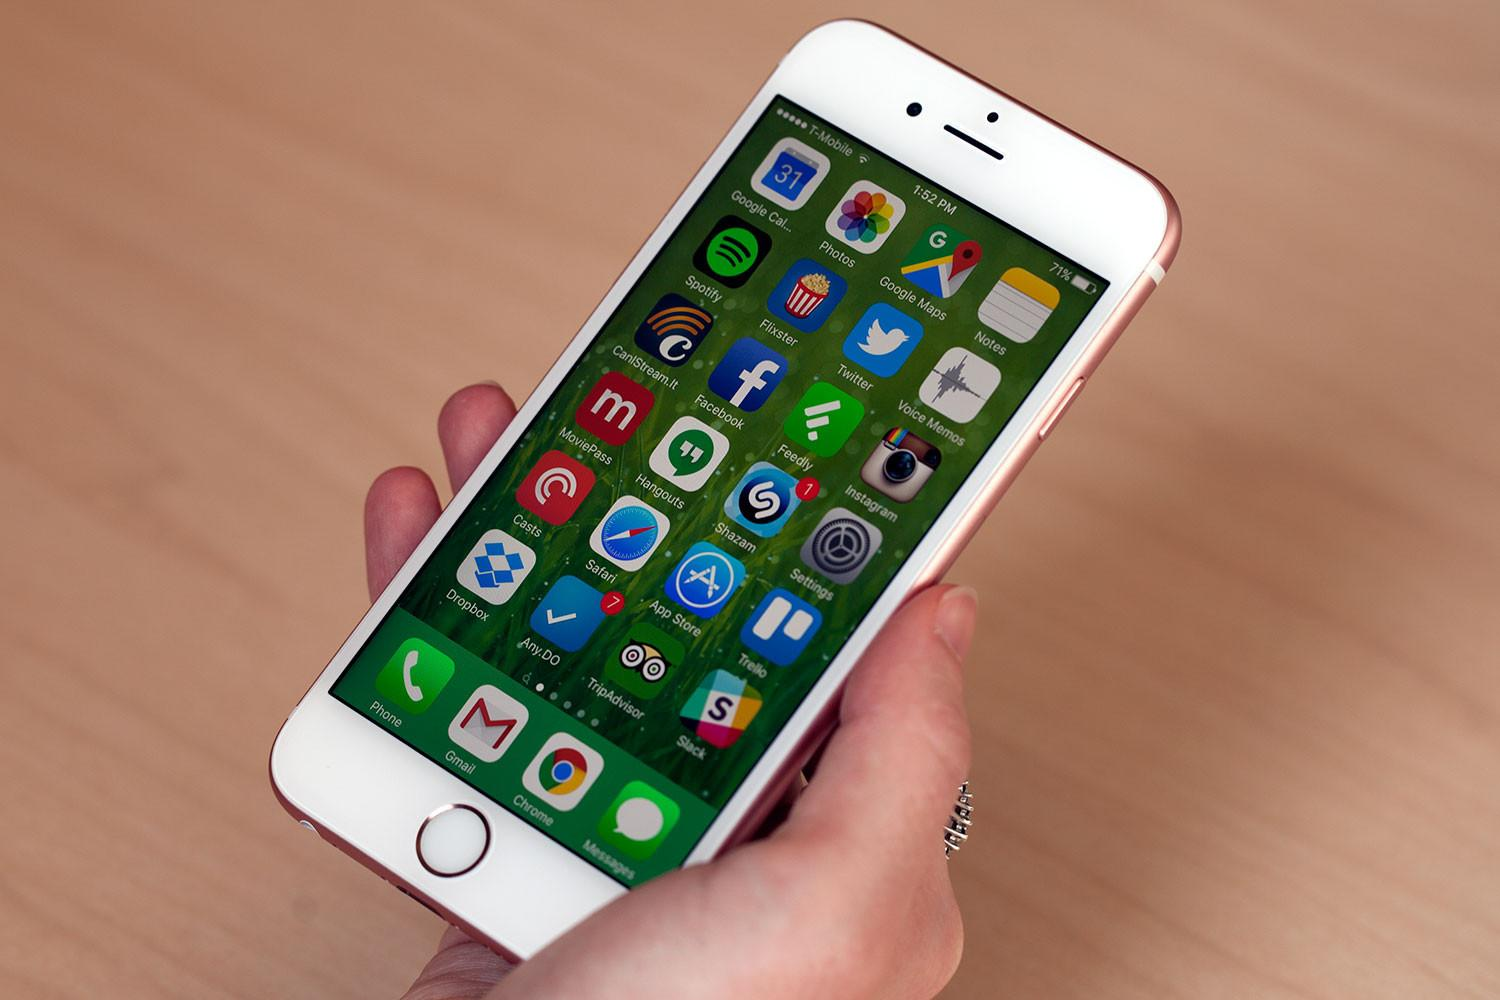 Goodbye Samsung-based iPhone chips? Apple may switch to Intel by 2018